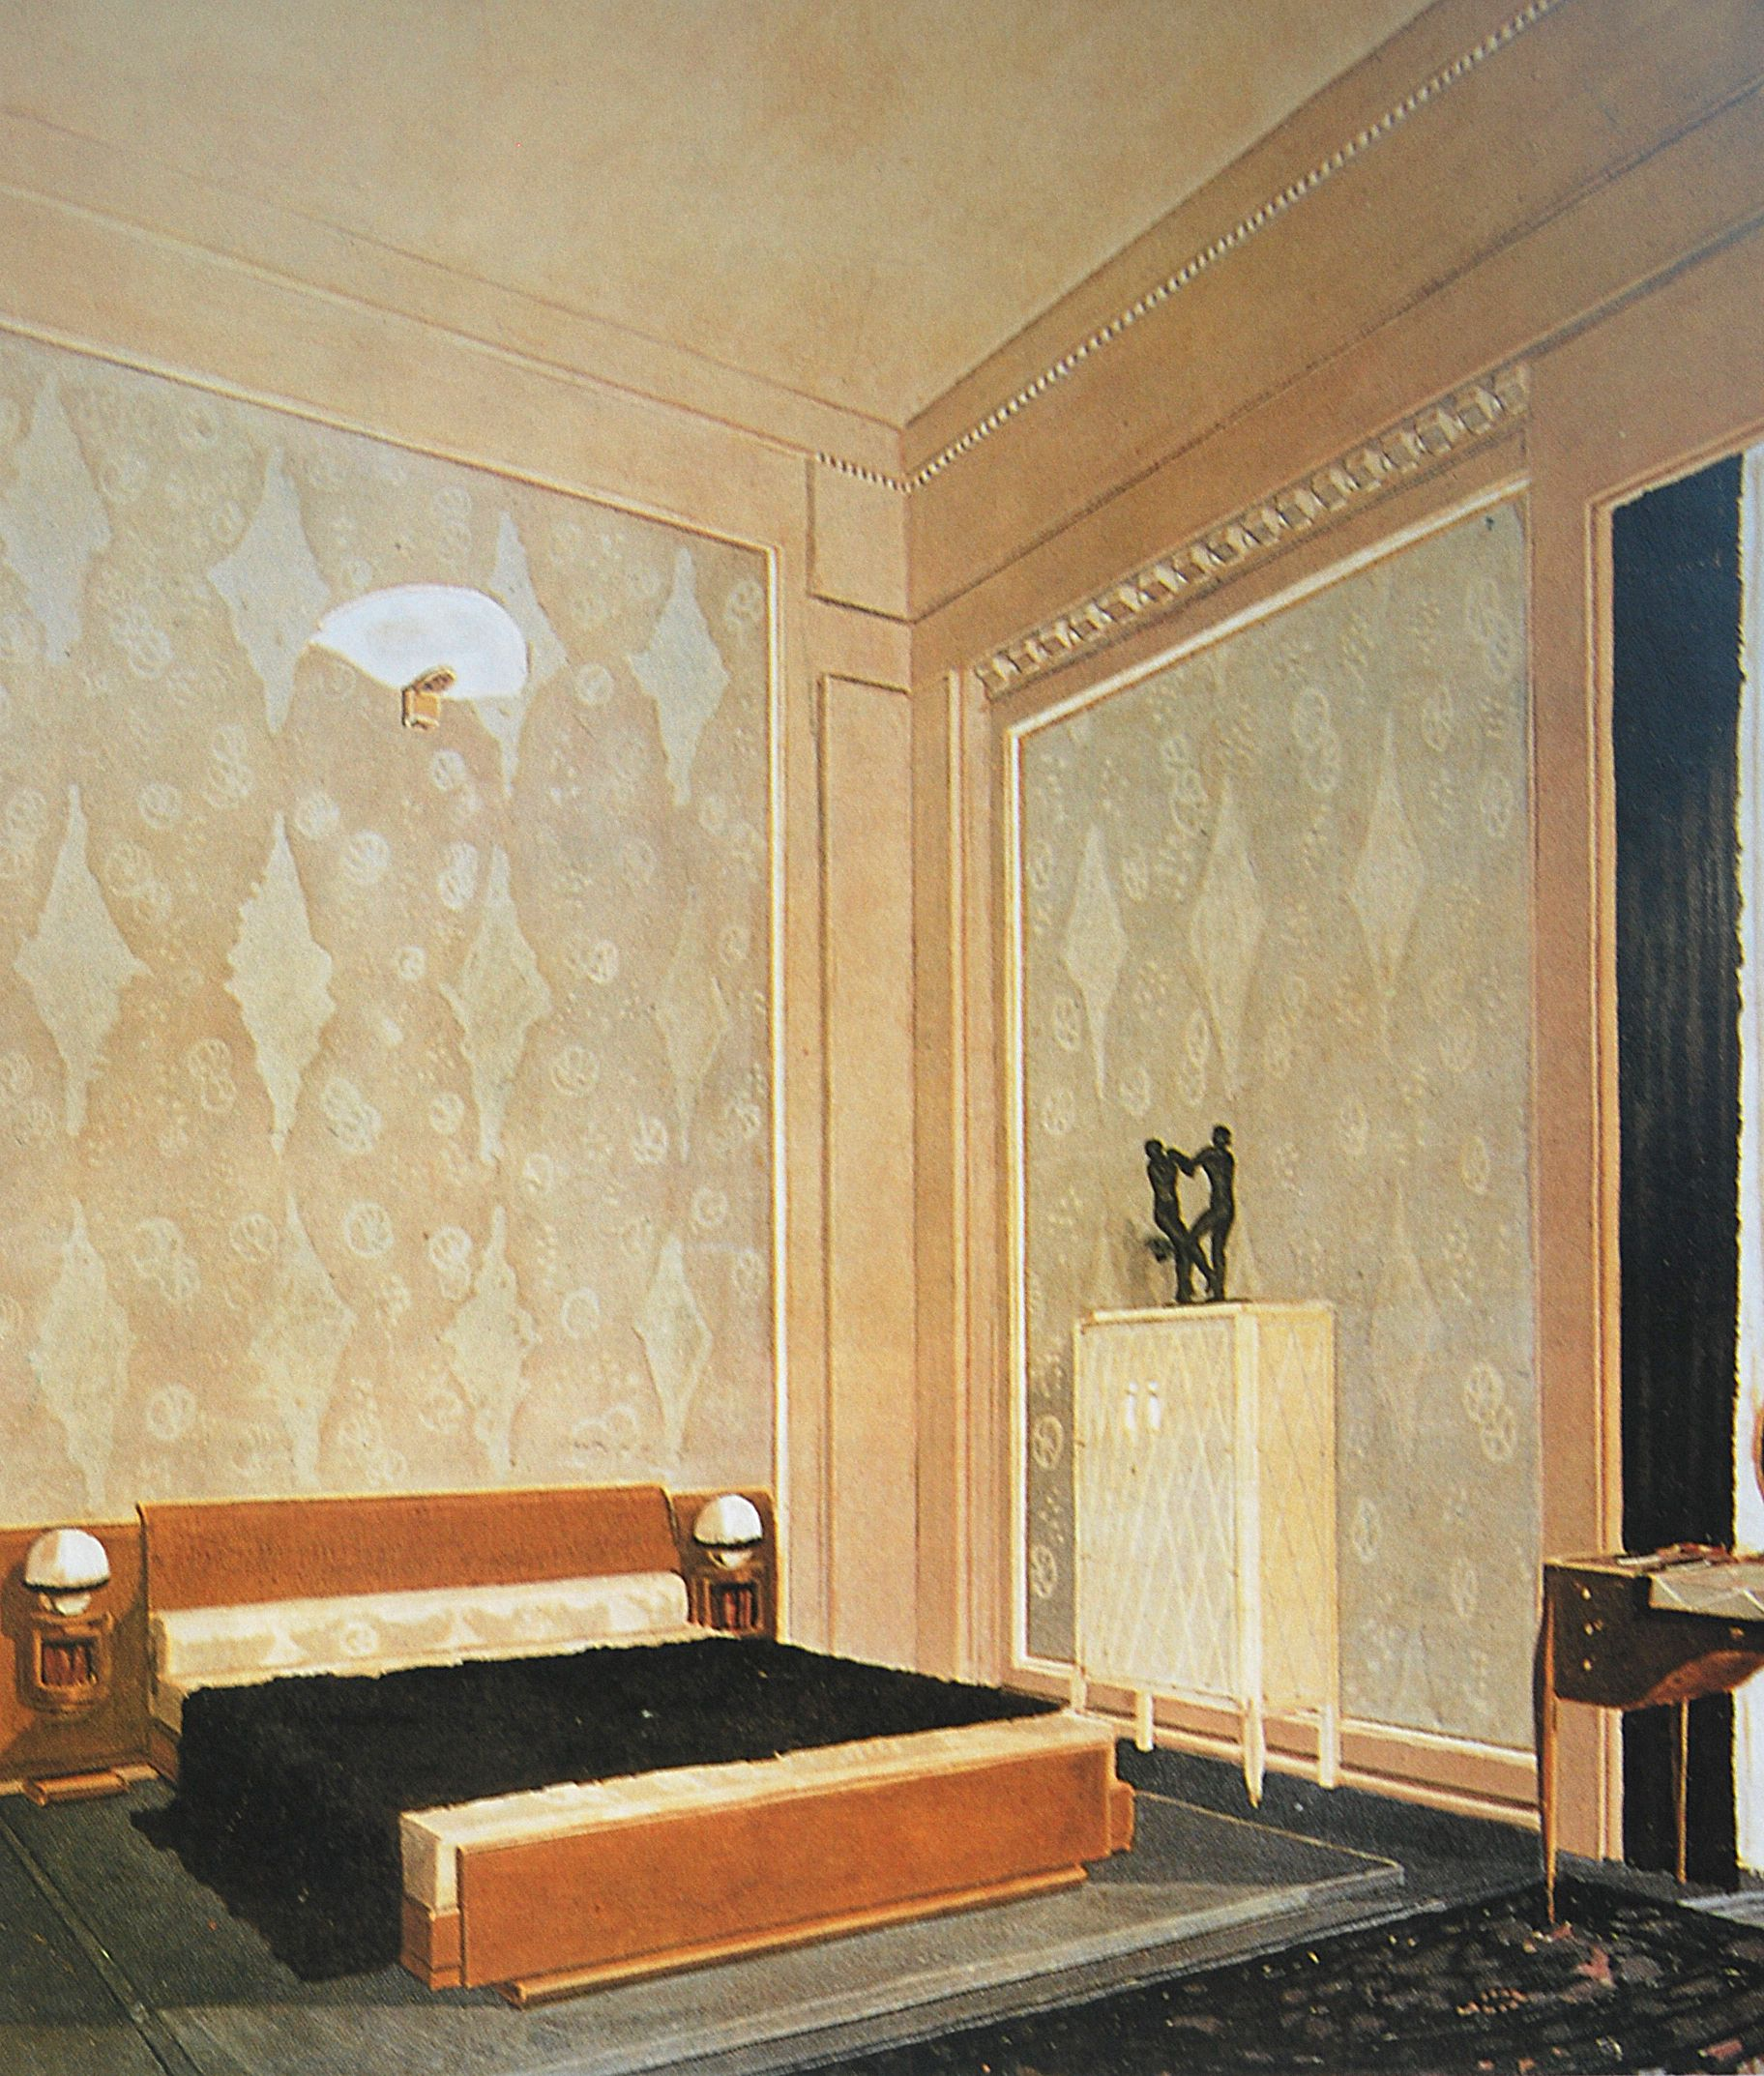 the 1925 Paris Exposition - The refined elegance of a Ruhlmann ...